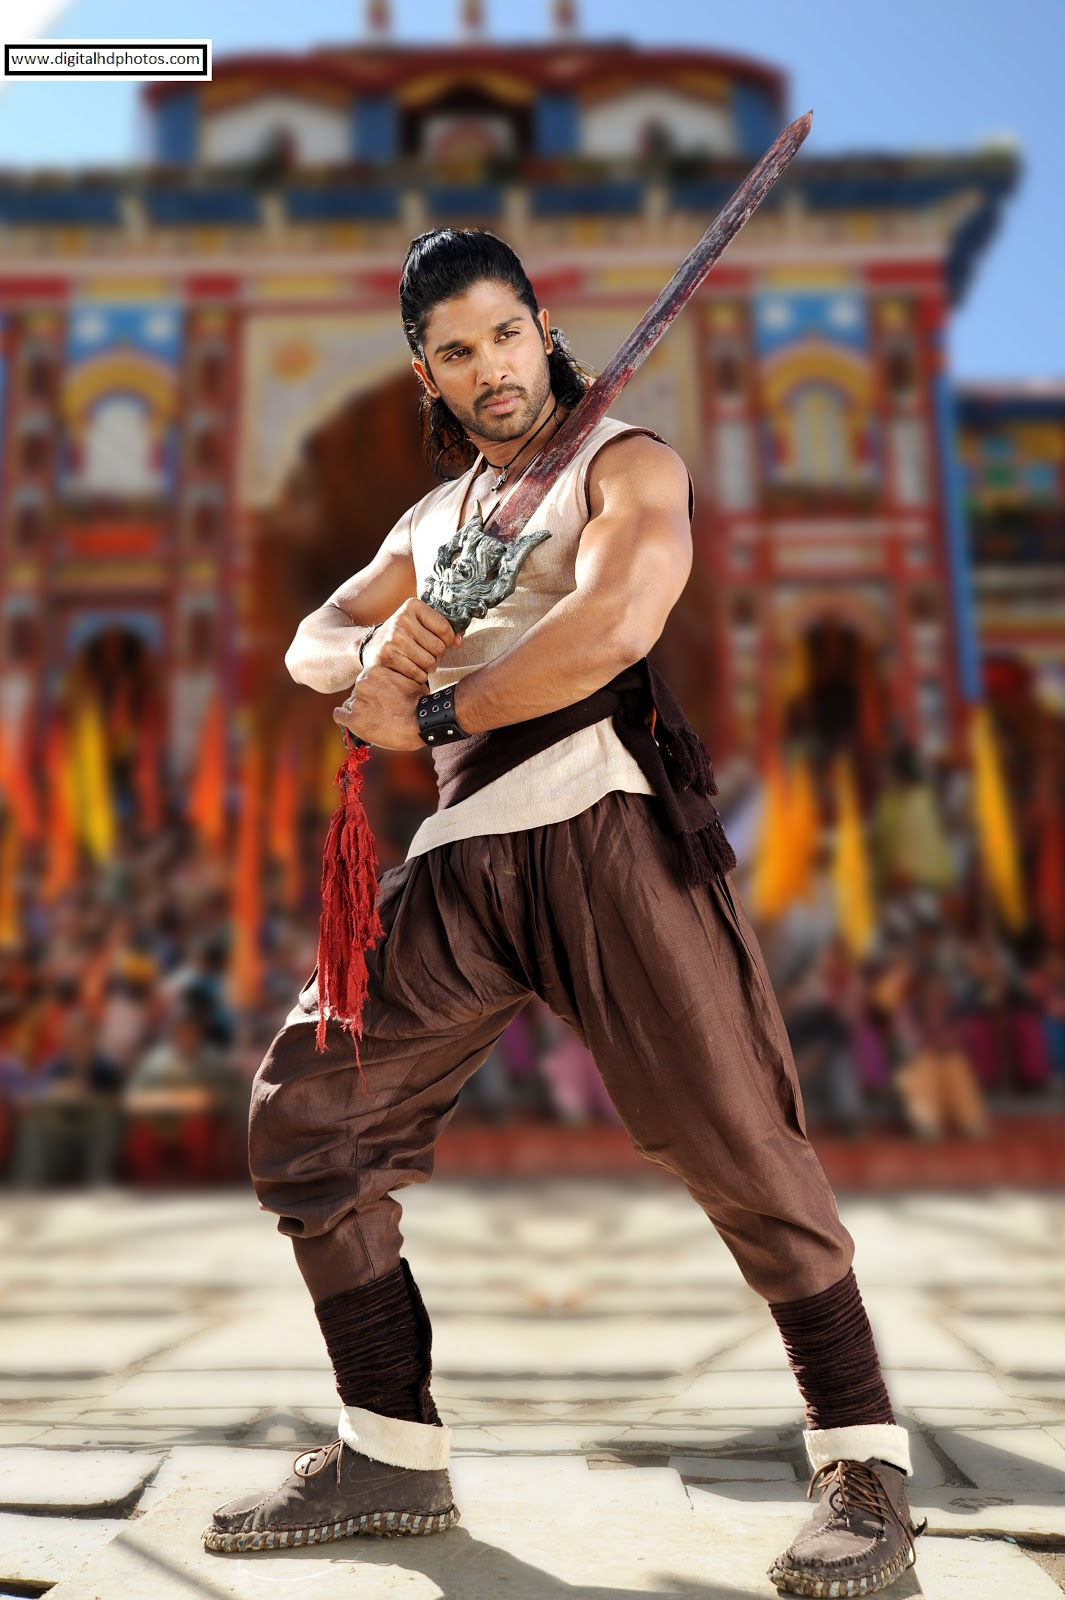 allu arjun digital hd photos